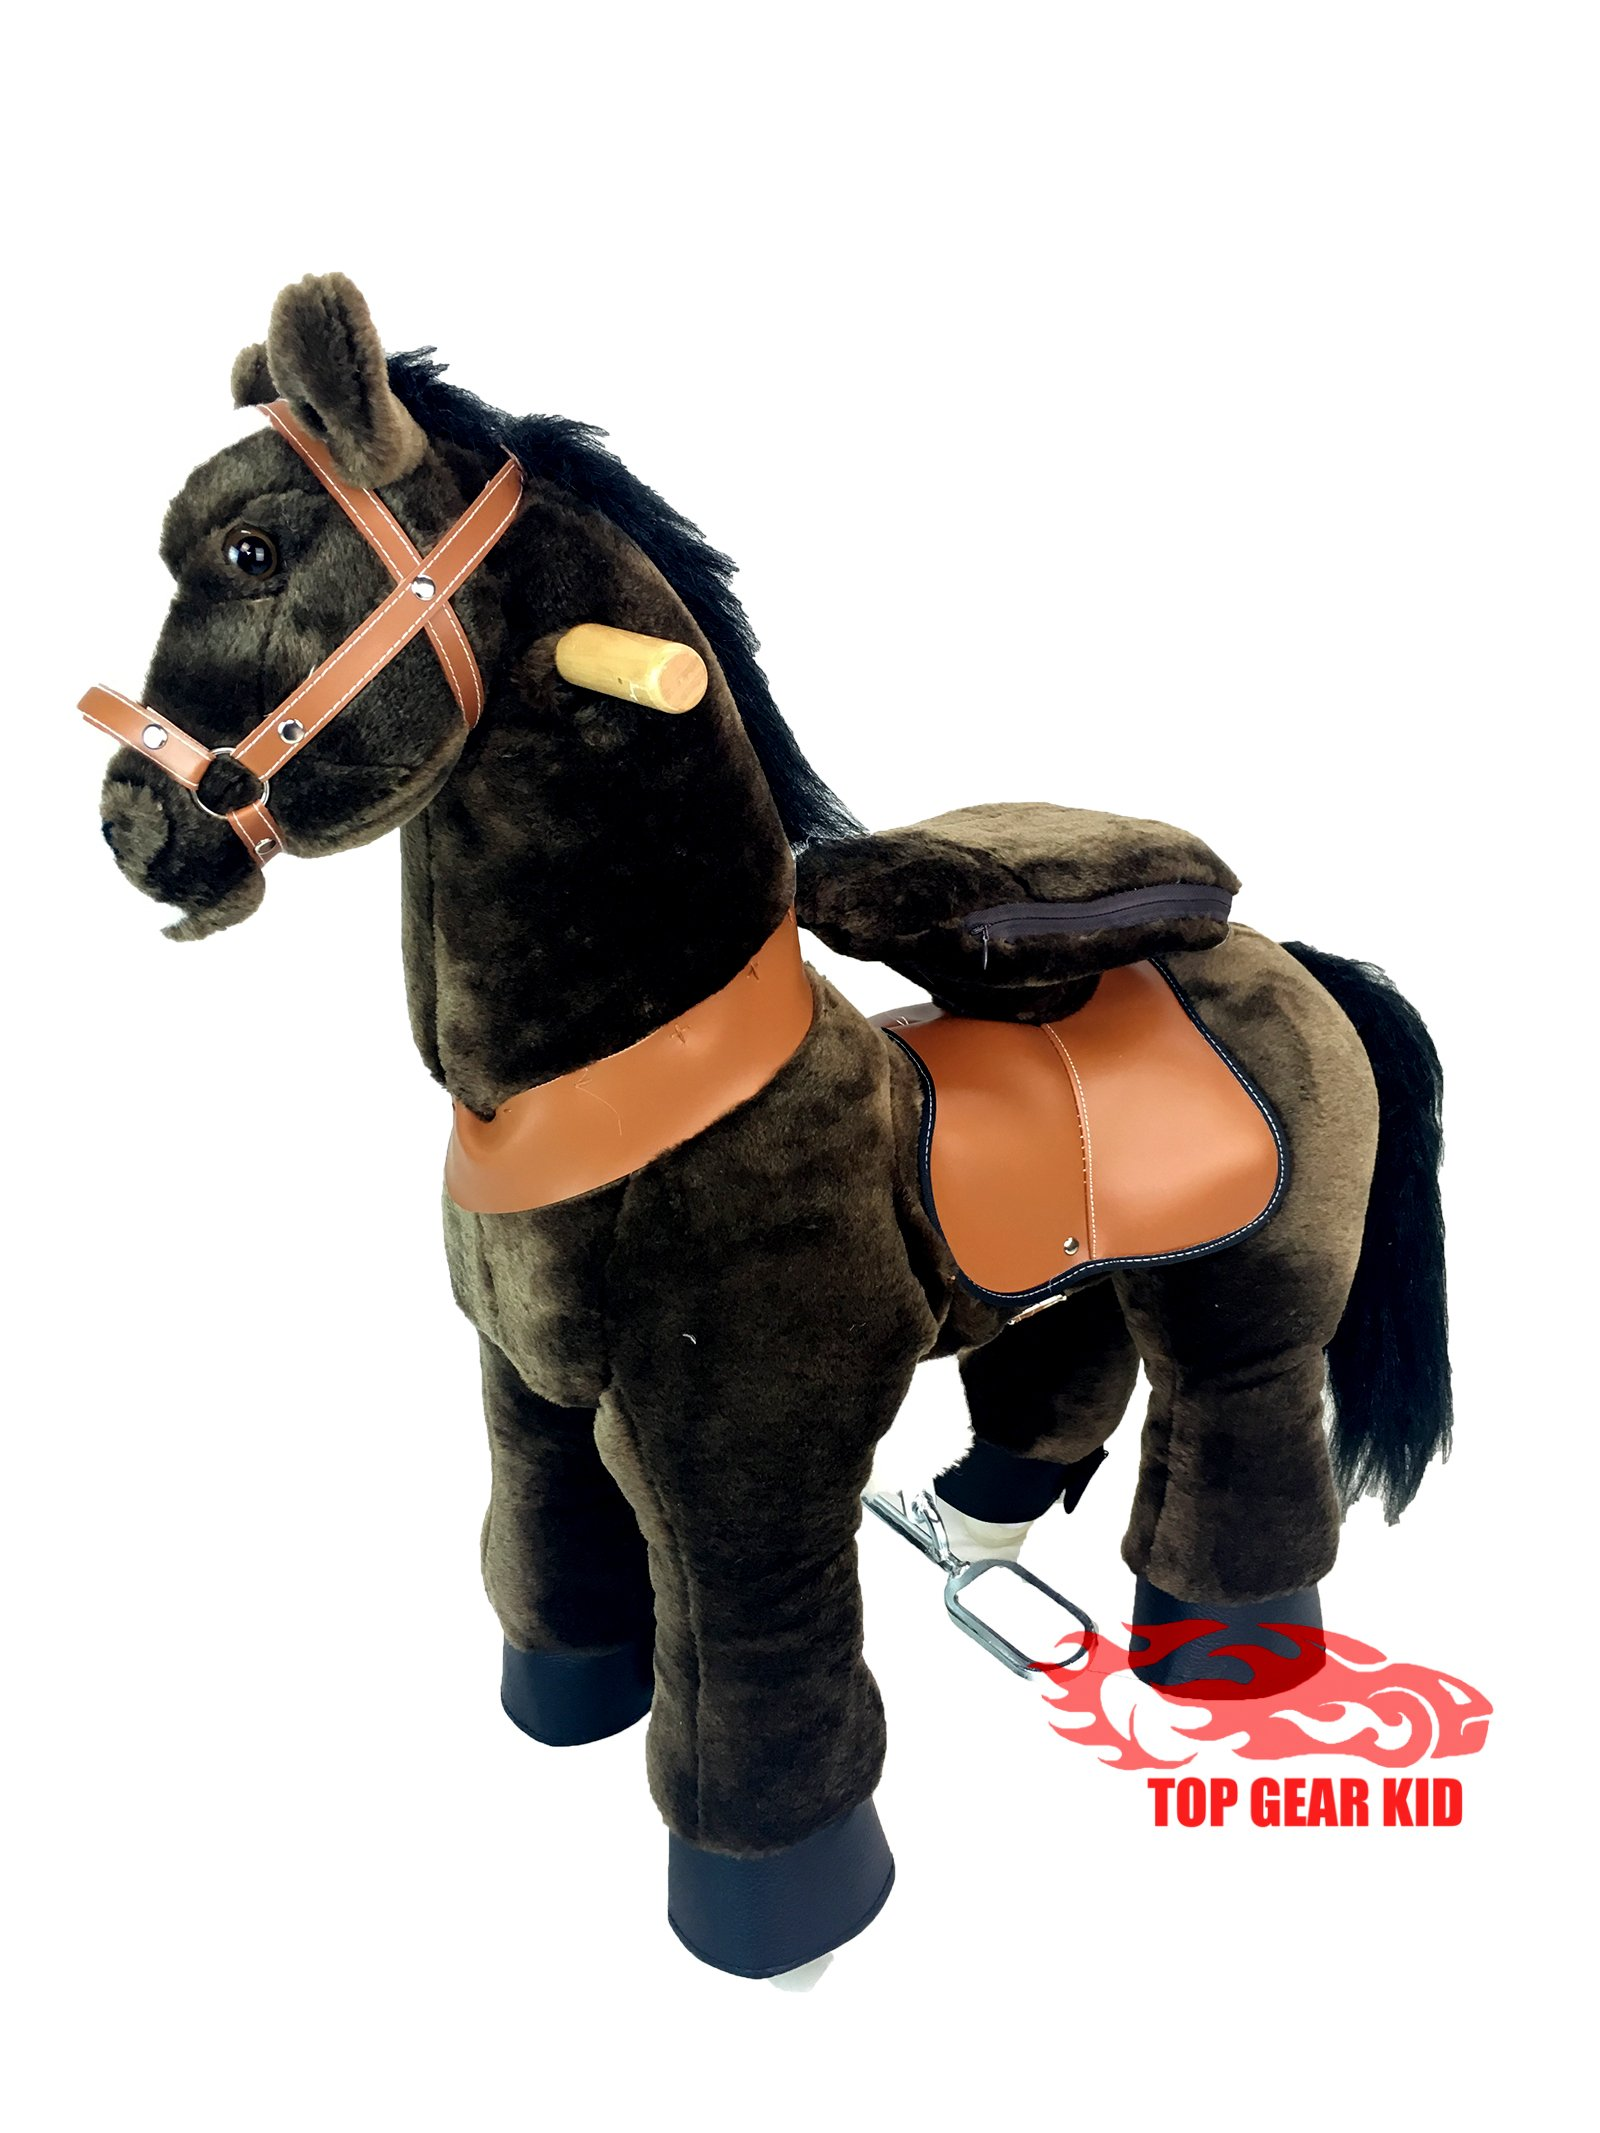 Top Gear Kid Ride On Horse Size SMALL for Children 2 to 5 Yeas Old with SOUND (DARK BROWN)